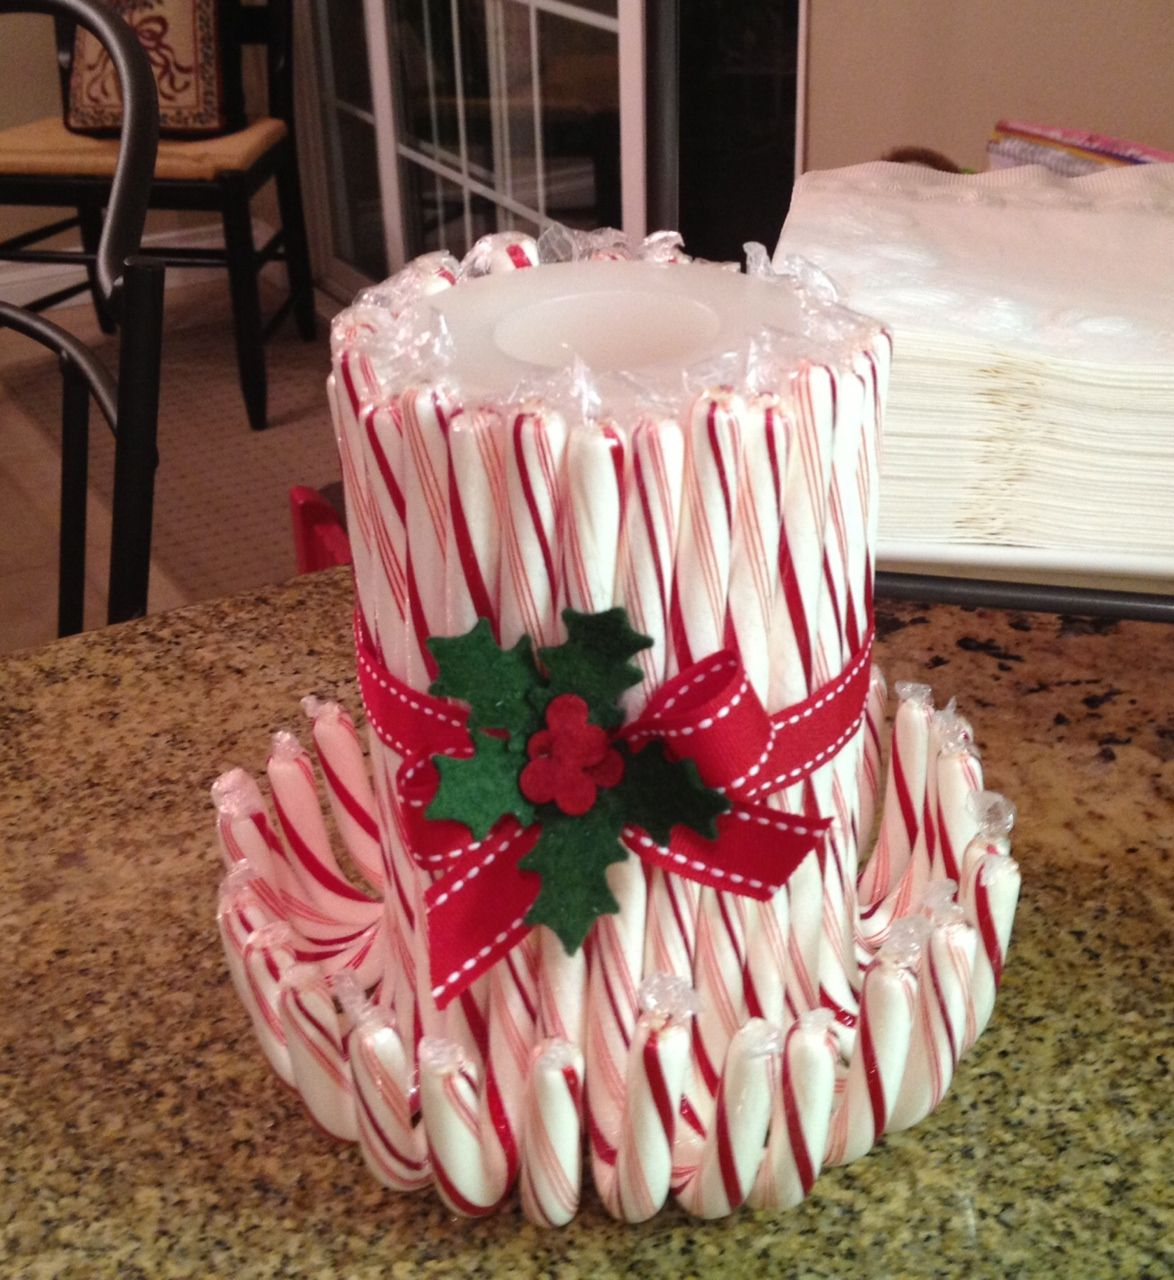 How To Decorate A Cane Easy Candy Cane Candle Take A Candle And Wrap Any Of Your